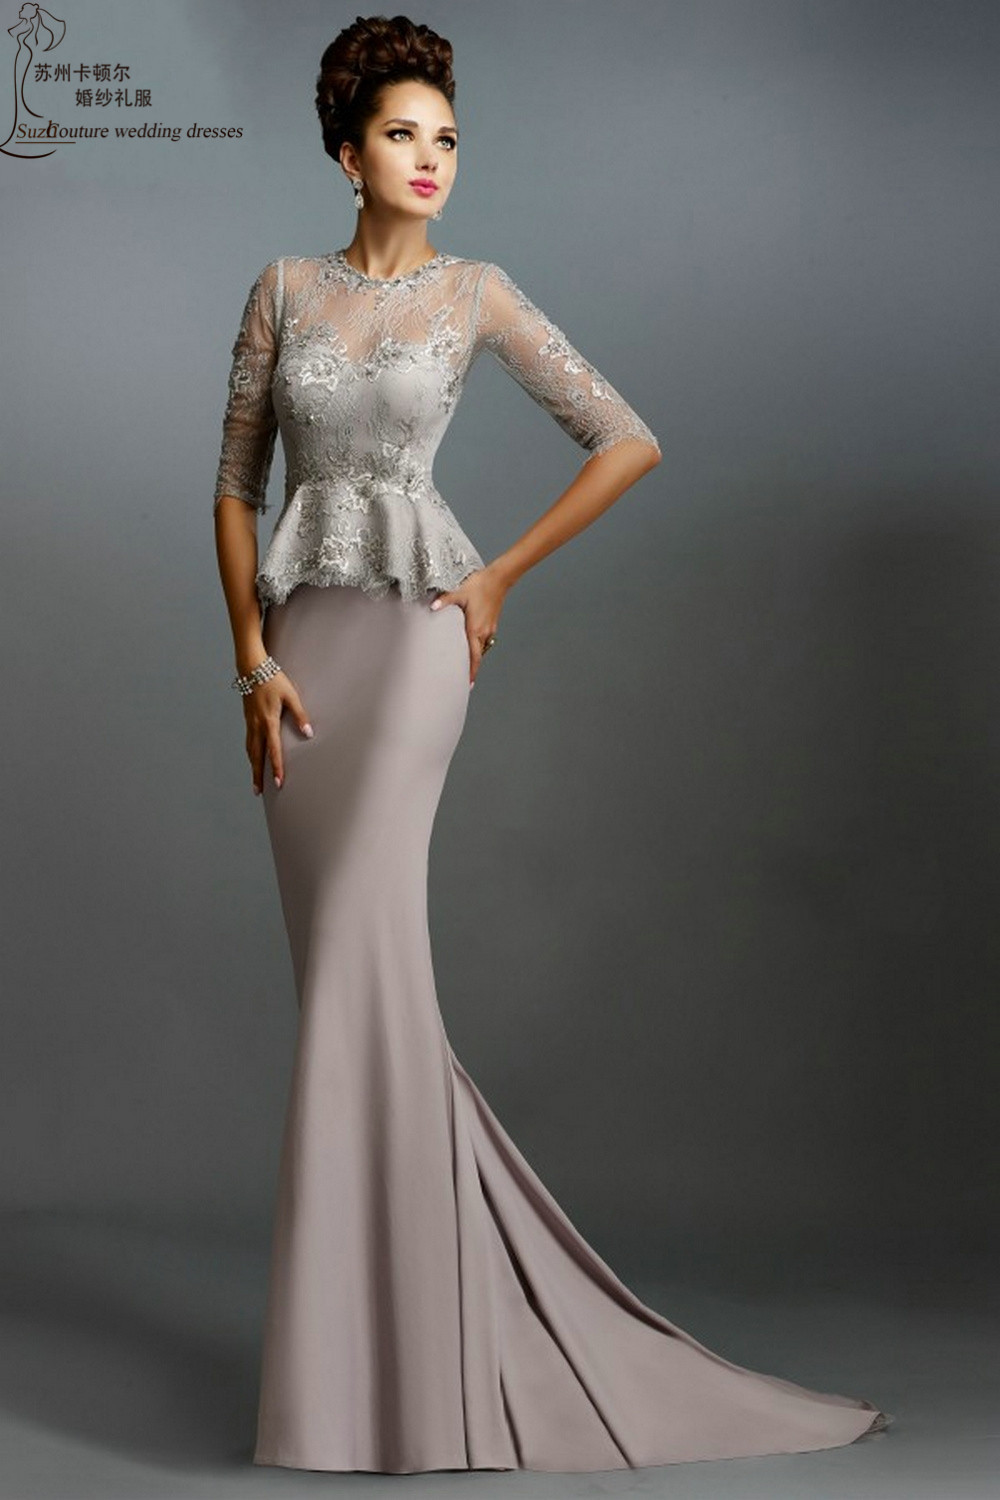 Colorful Extra Long Evening Gowns Pictures - Images for wedding gown ...